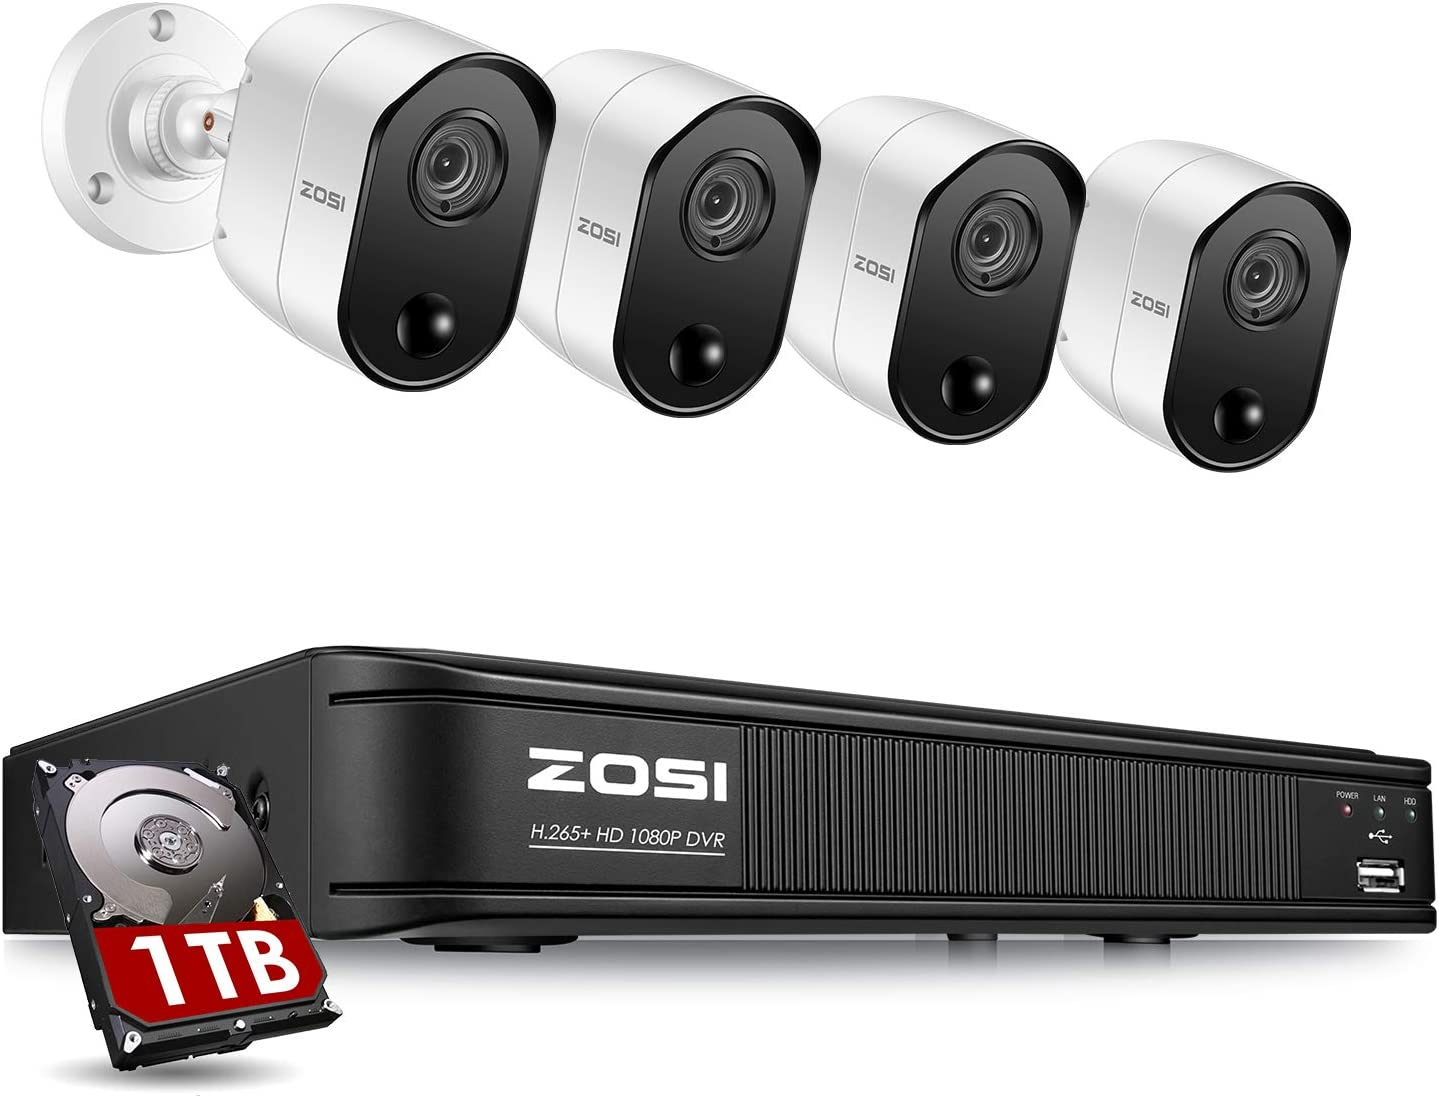 ZOSI 1080p 8 Channel Security Camera System for Home, H.265+ CCTV DVR with Hard Drive 1TB and 4 x 2MP Surveillance Bullet Camera Outdoor Indoor with PIR Motion Sensor,Day Night Vision,Remote Access